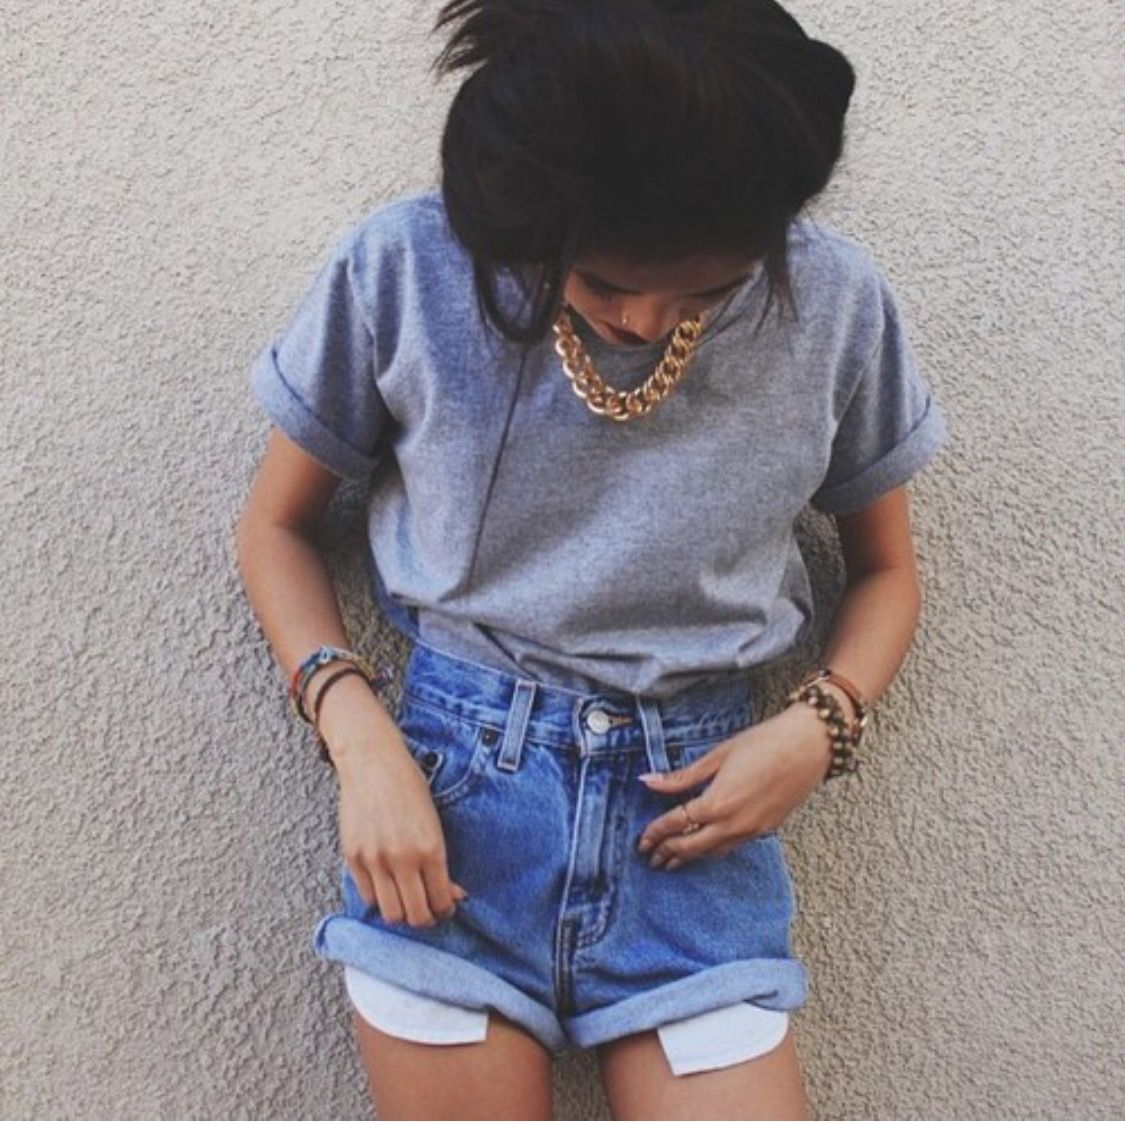 Discussion on this topic: 15 Hipster Fashion Trends That Are ActuallyStylish, 15-hipster-fashion-trends-that-are-actuallystylish/